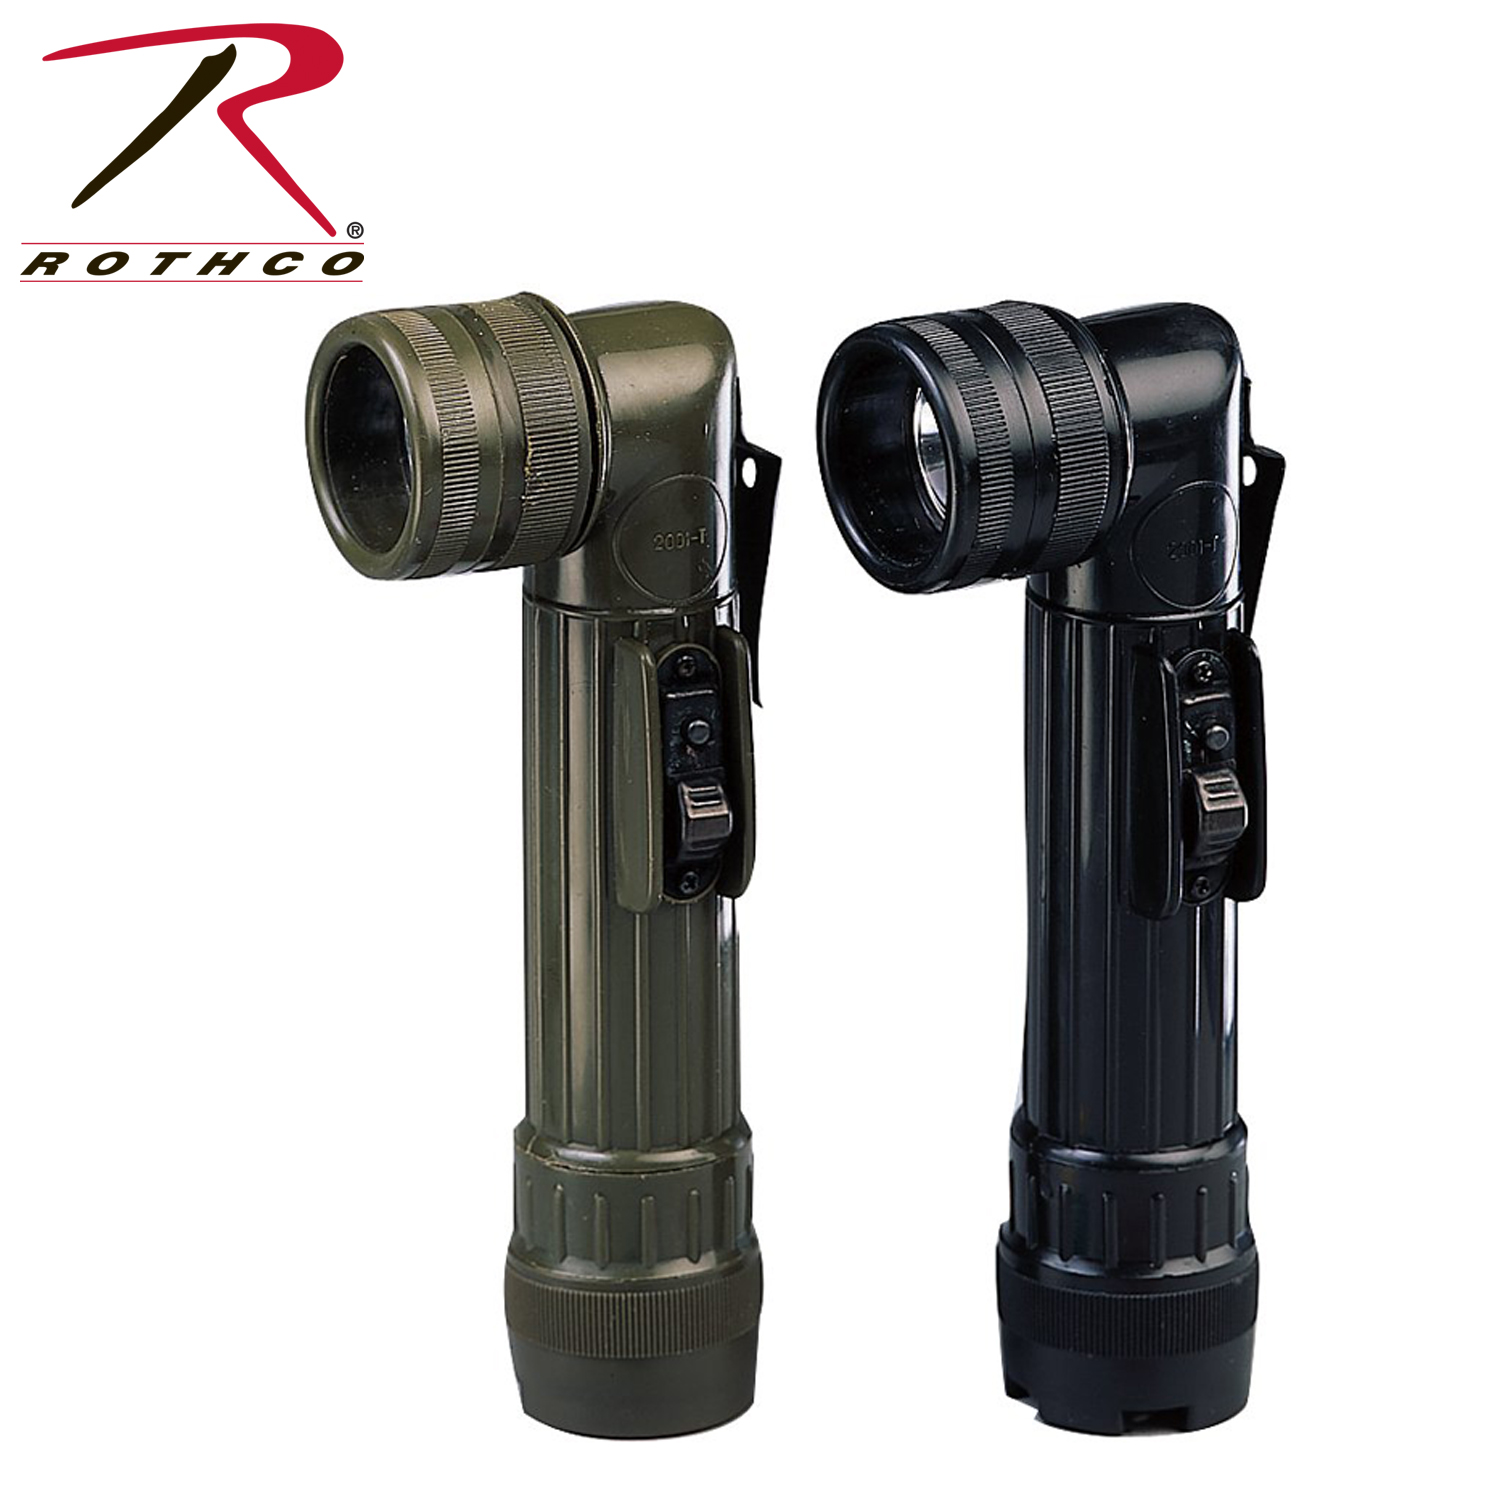 Rothco Army Style C Cell Flashlights